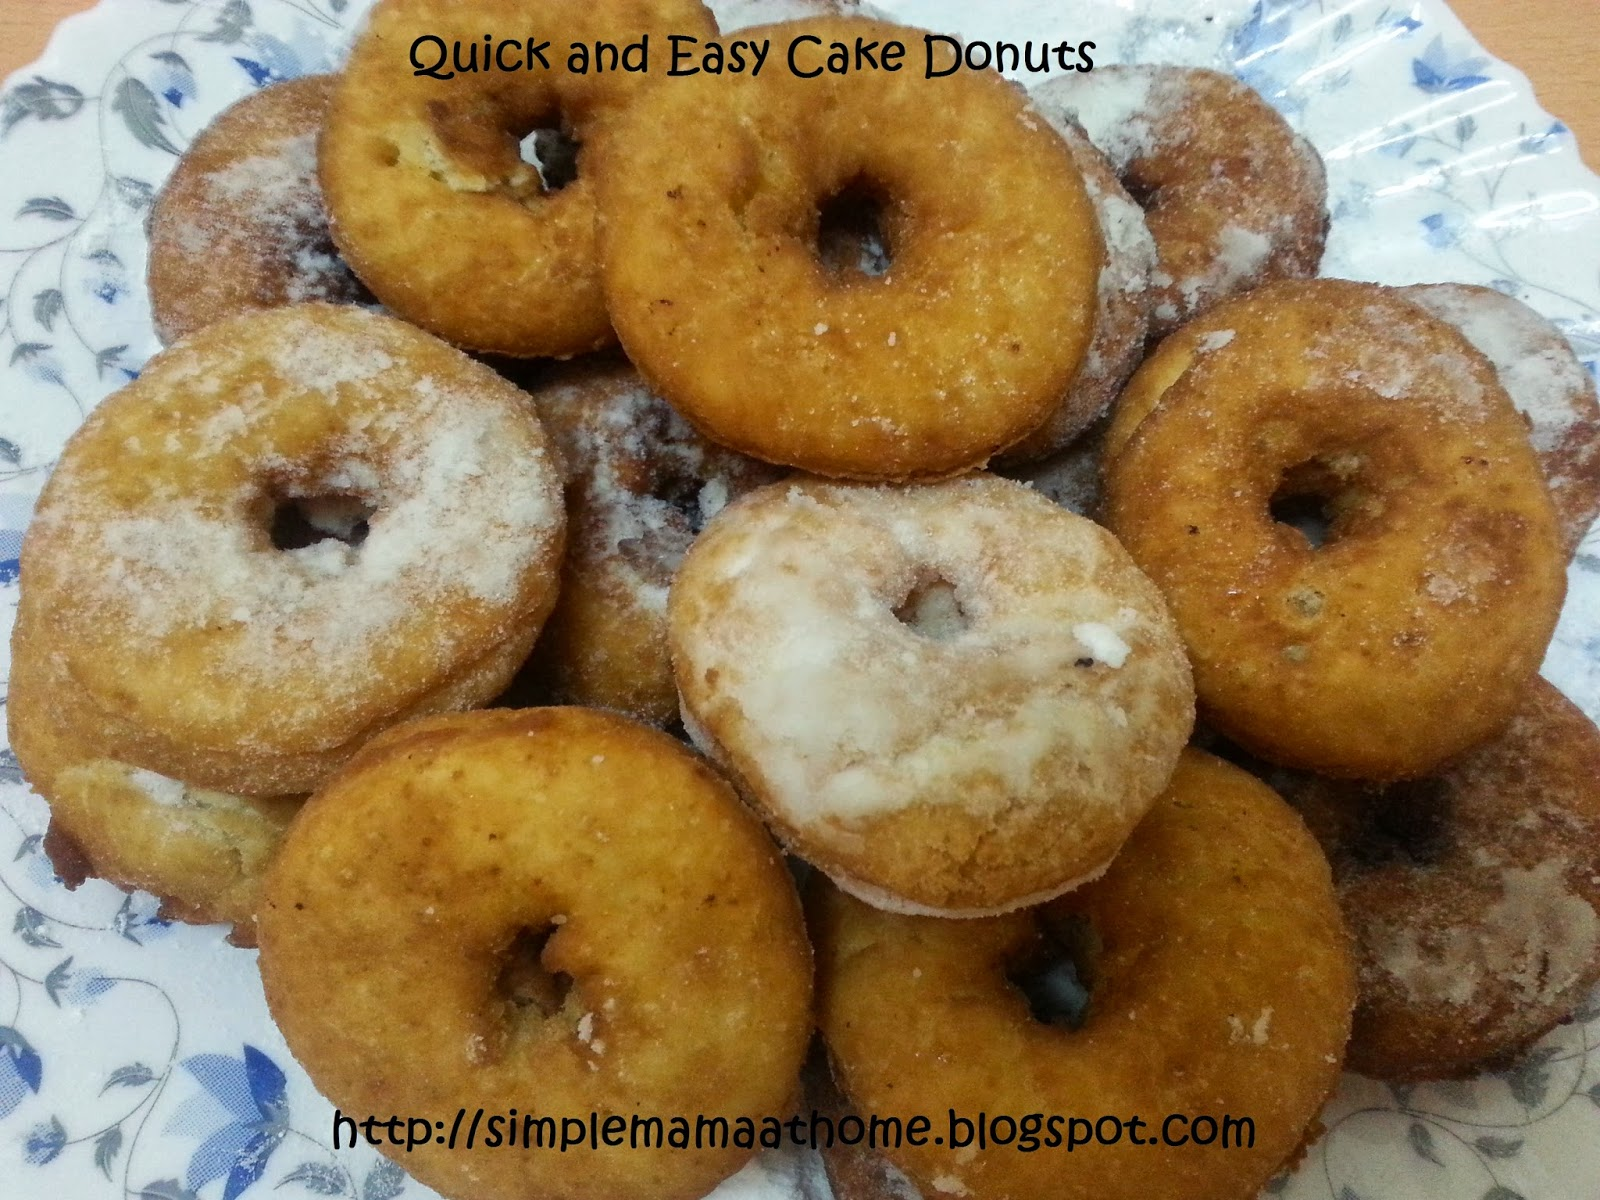 Quick and Easy Cake Donuts